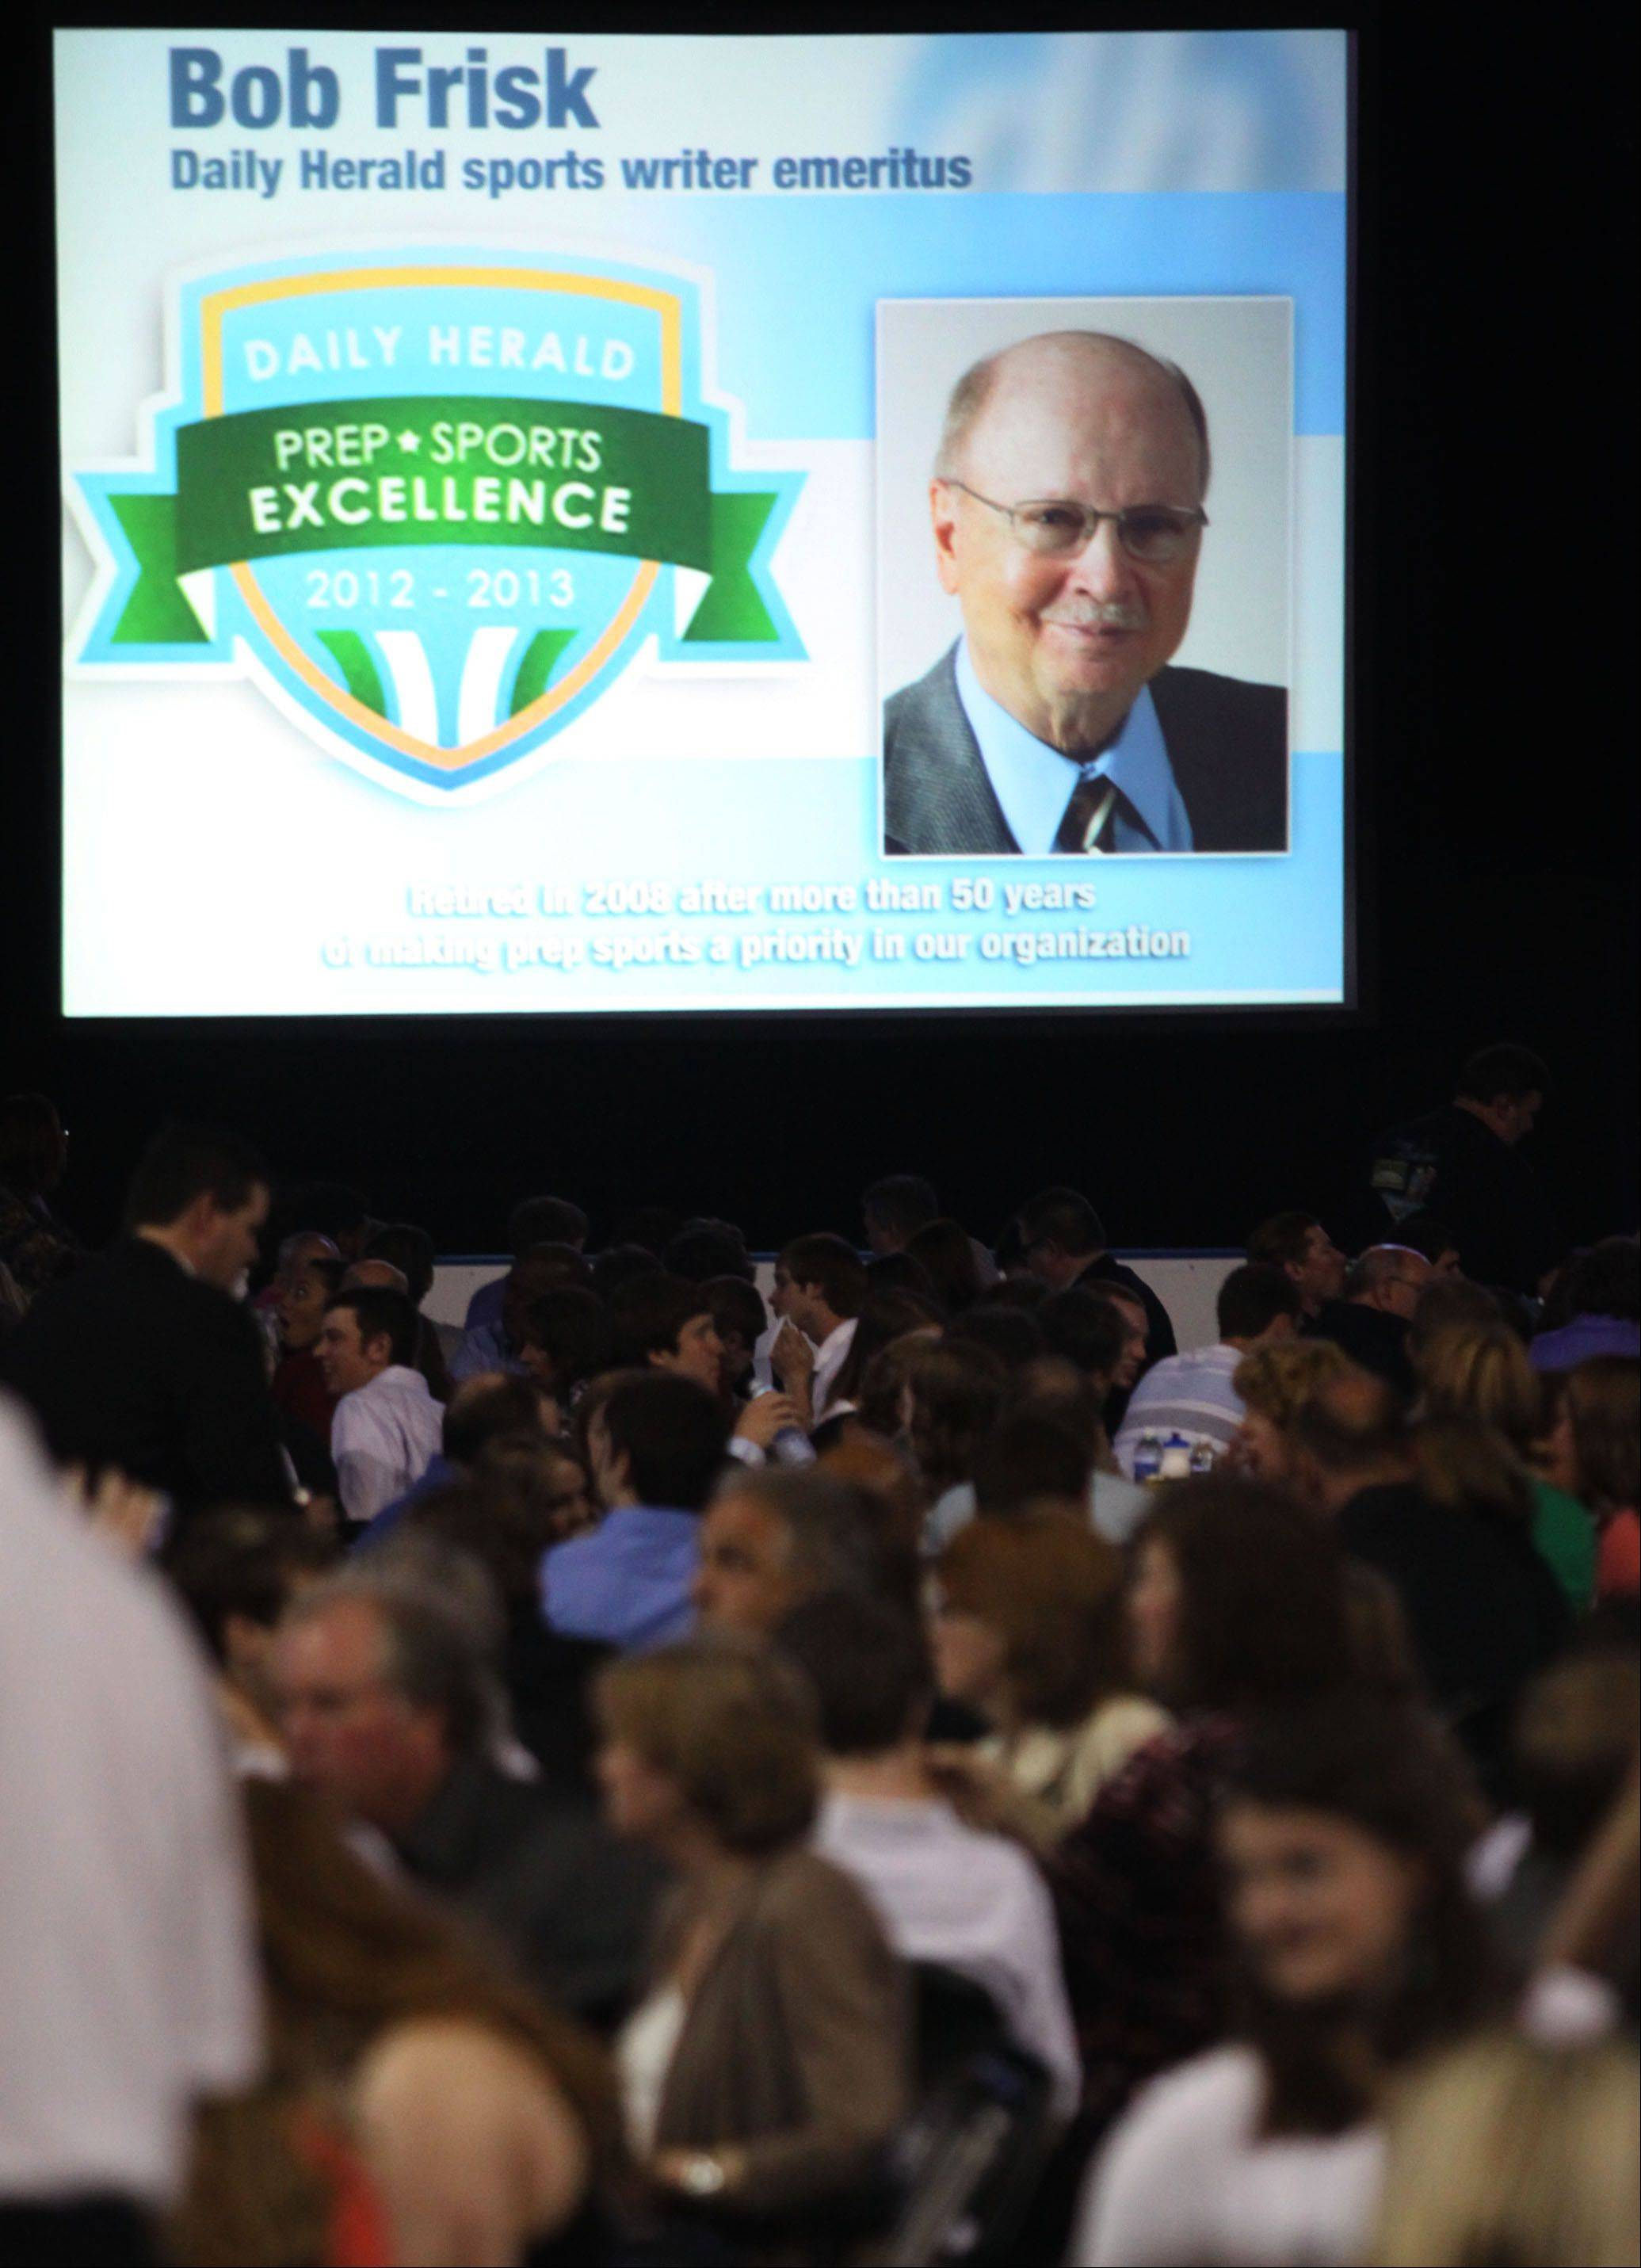 A frame honoring retired Daily Herald Prep Sports Editor Bob Frisk is shown during the Prep Sports Excellence Awards Ceremony at Sears Centre Arena in Hoffman Estates on Sunday.